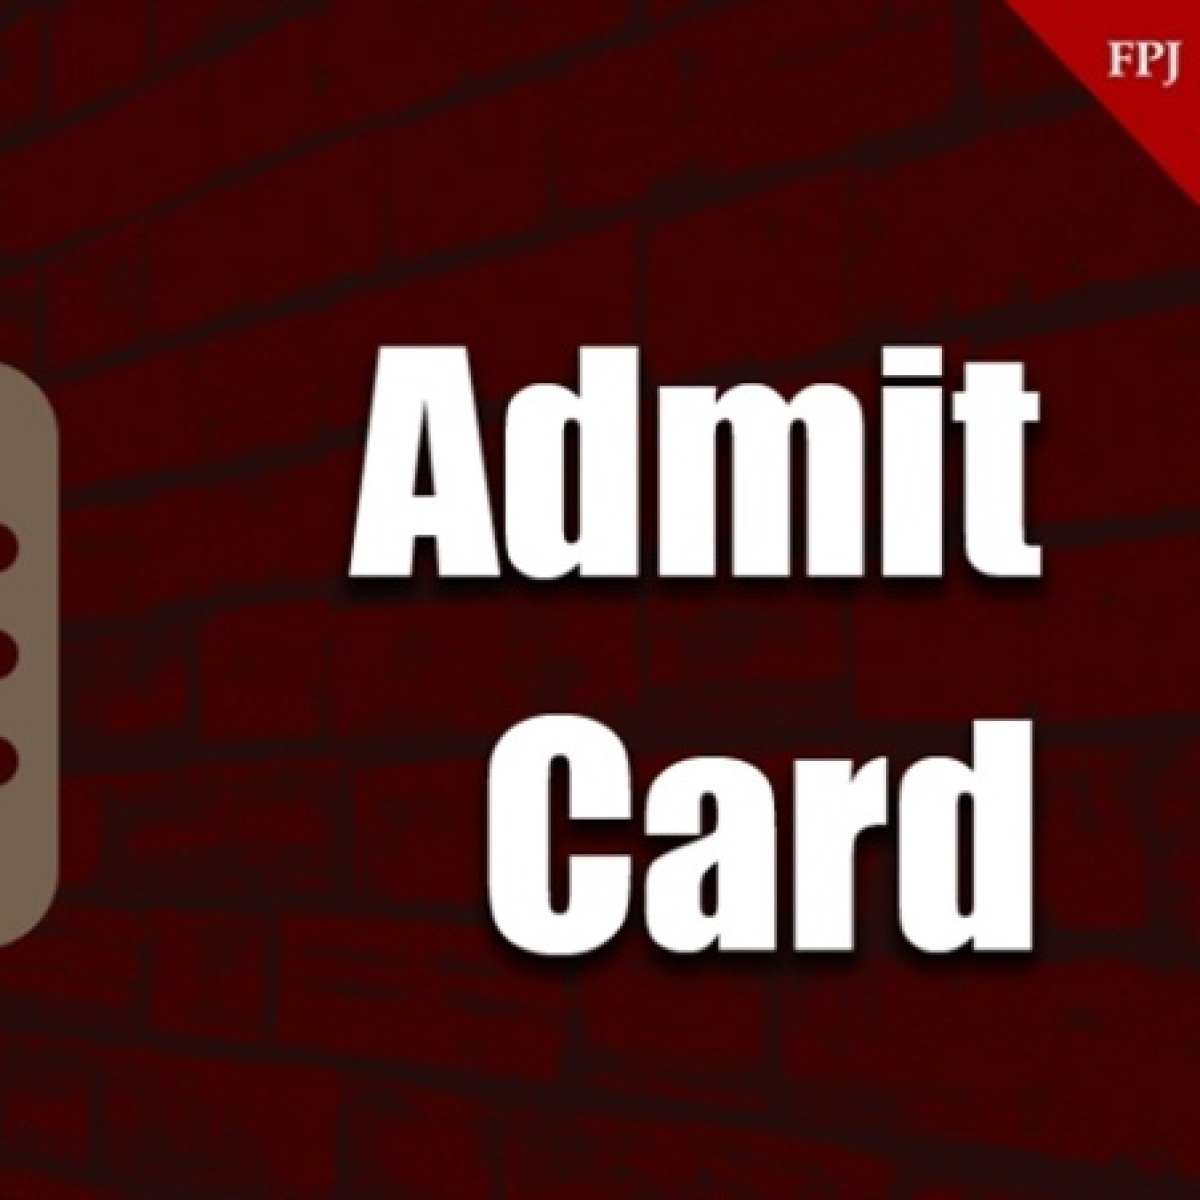 CMAT admit card 2020 released, check at cmat.nta.nic.in